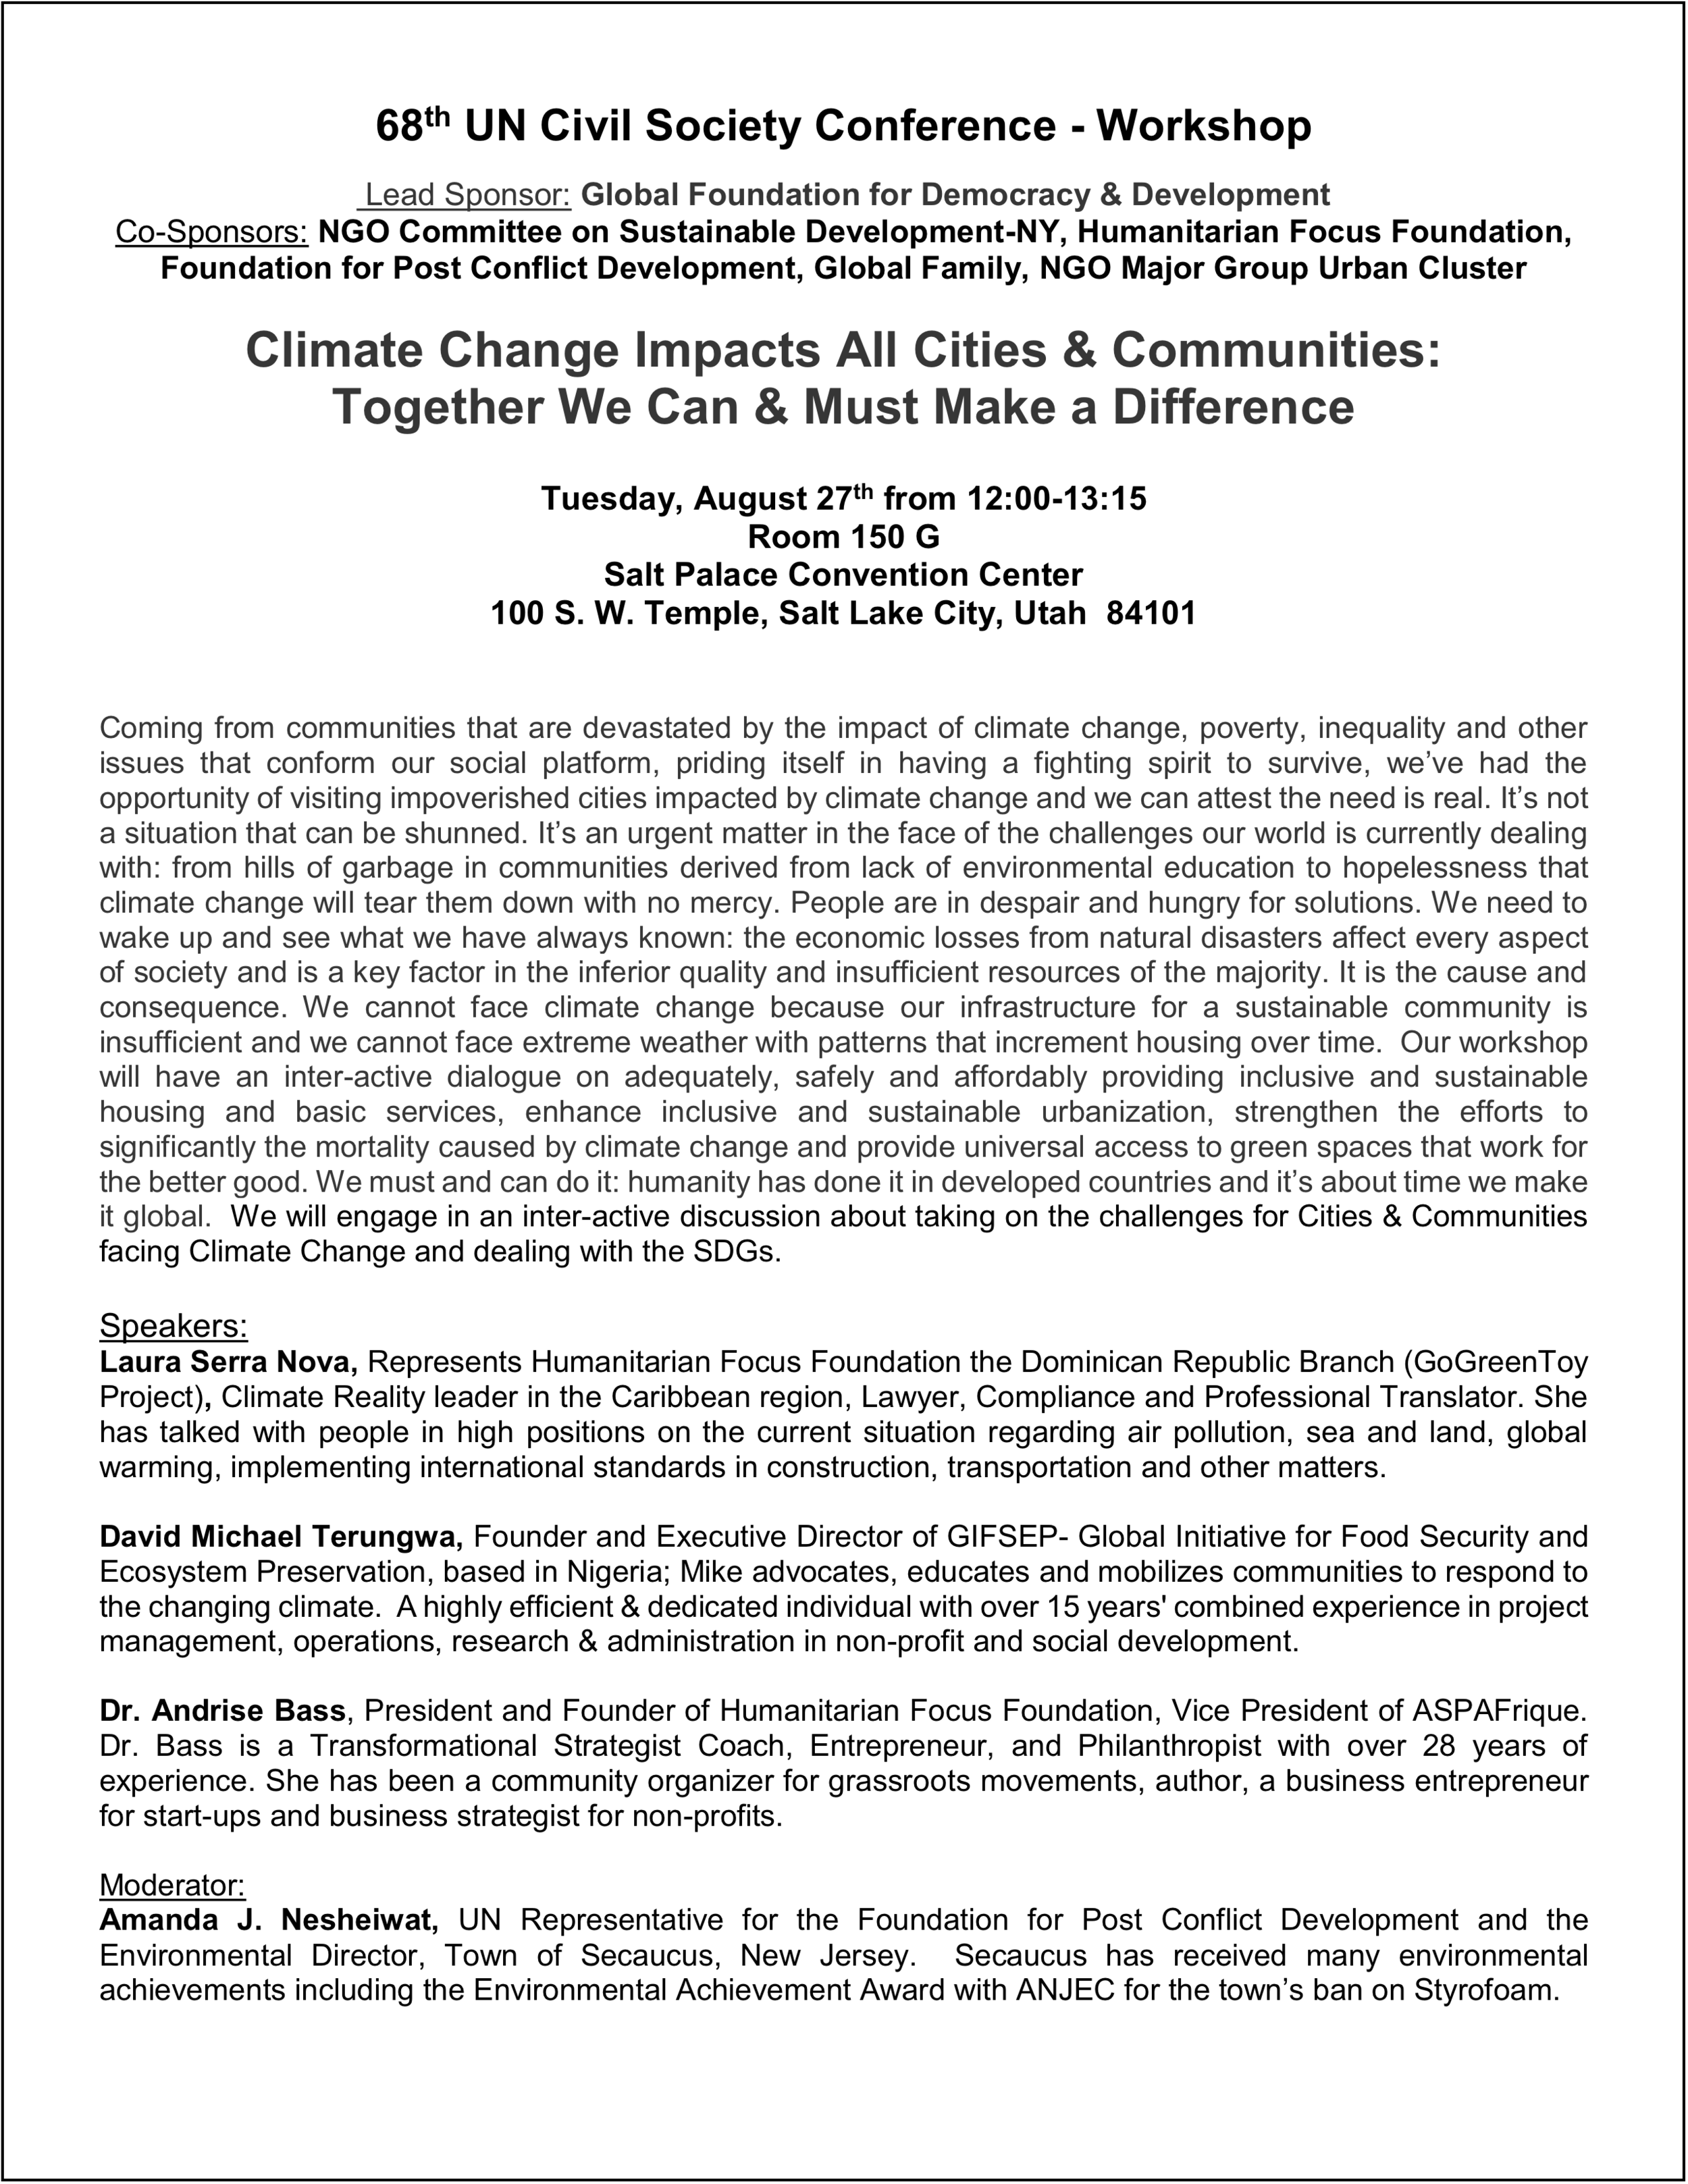 bClimate Change Impacts Cities & Communities-cA1.png